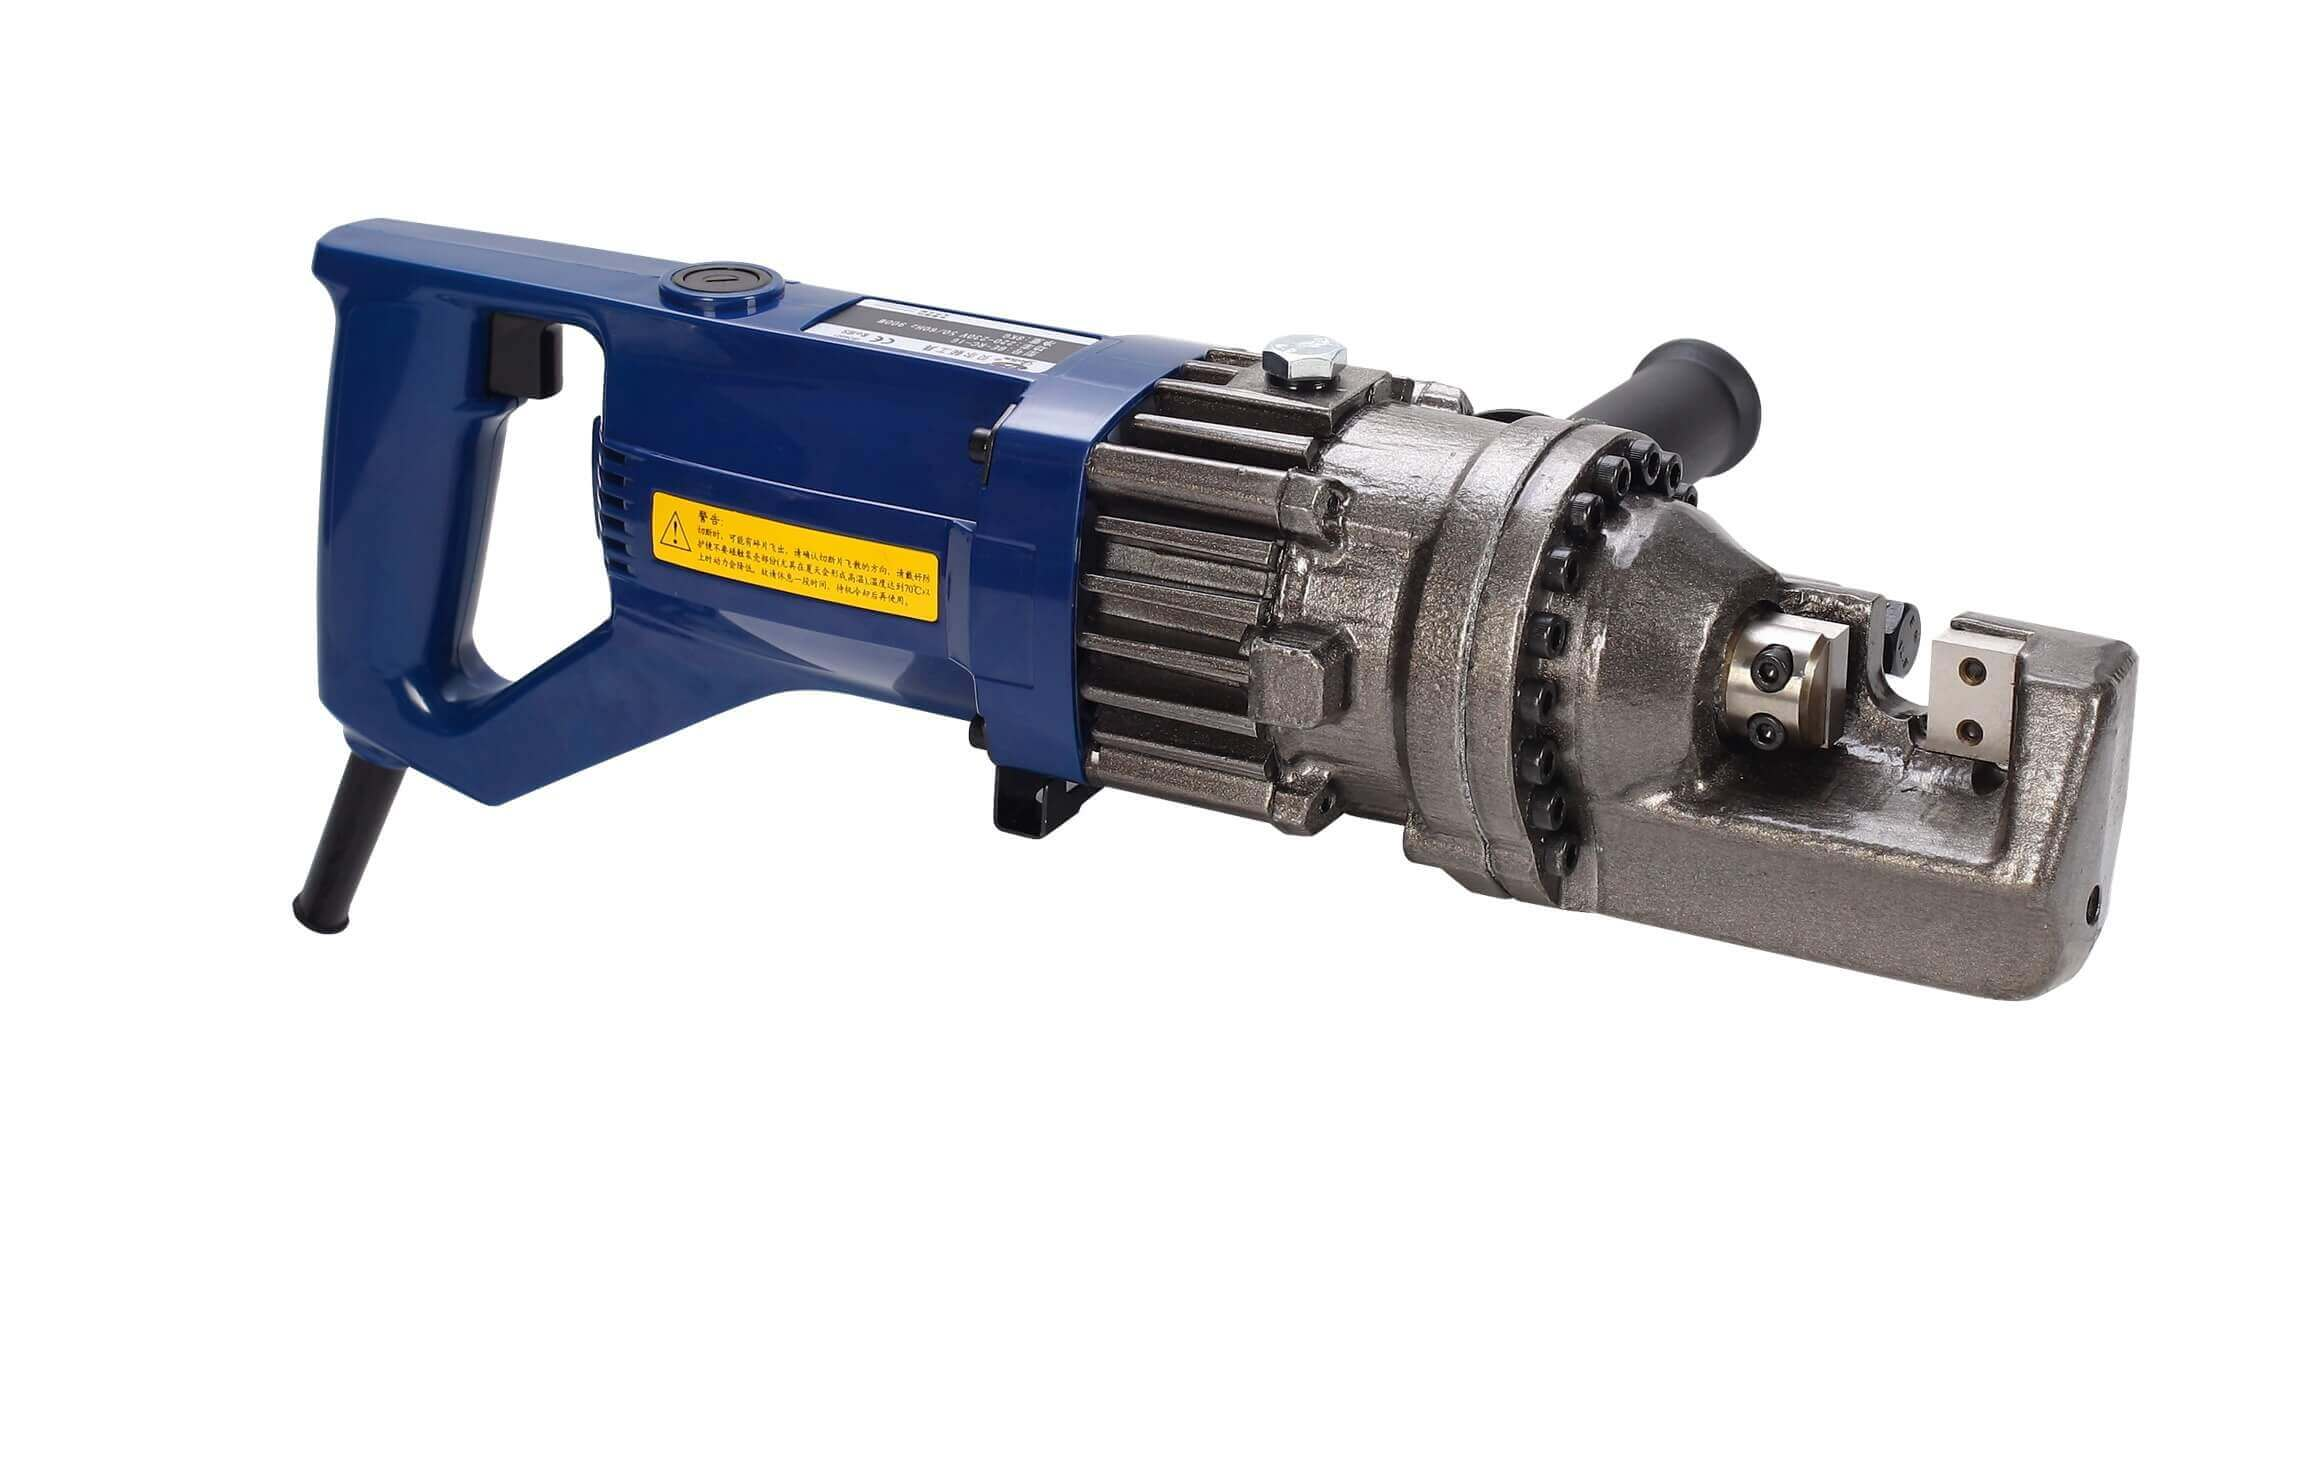 The BE RC 16 rebar cutting and bending machine is a light weight, small and portable electric rebar cutter. Features:- 1.Easy to operate. 2.This electric rebar cutter is safe for the users as it cuts without sparks, sediments and smell. 3.Widely used in cutting construction rears, deformed bars, round steel bars, steel rods and threaded rods. 4.Best selling tmt bar cutting machine with 24*7 after sales support by Lessdeal..